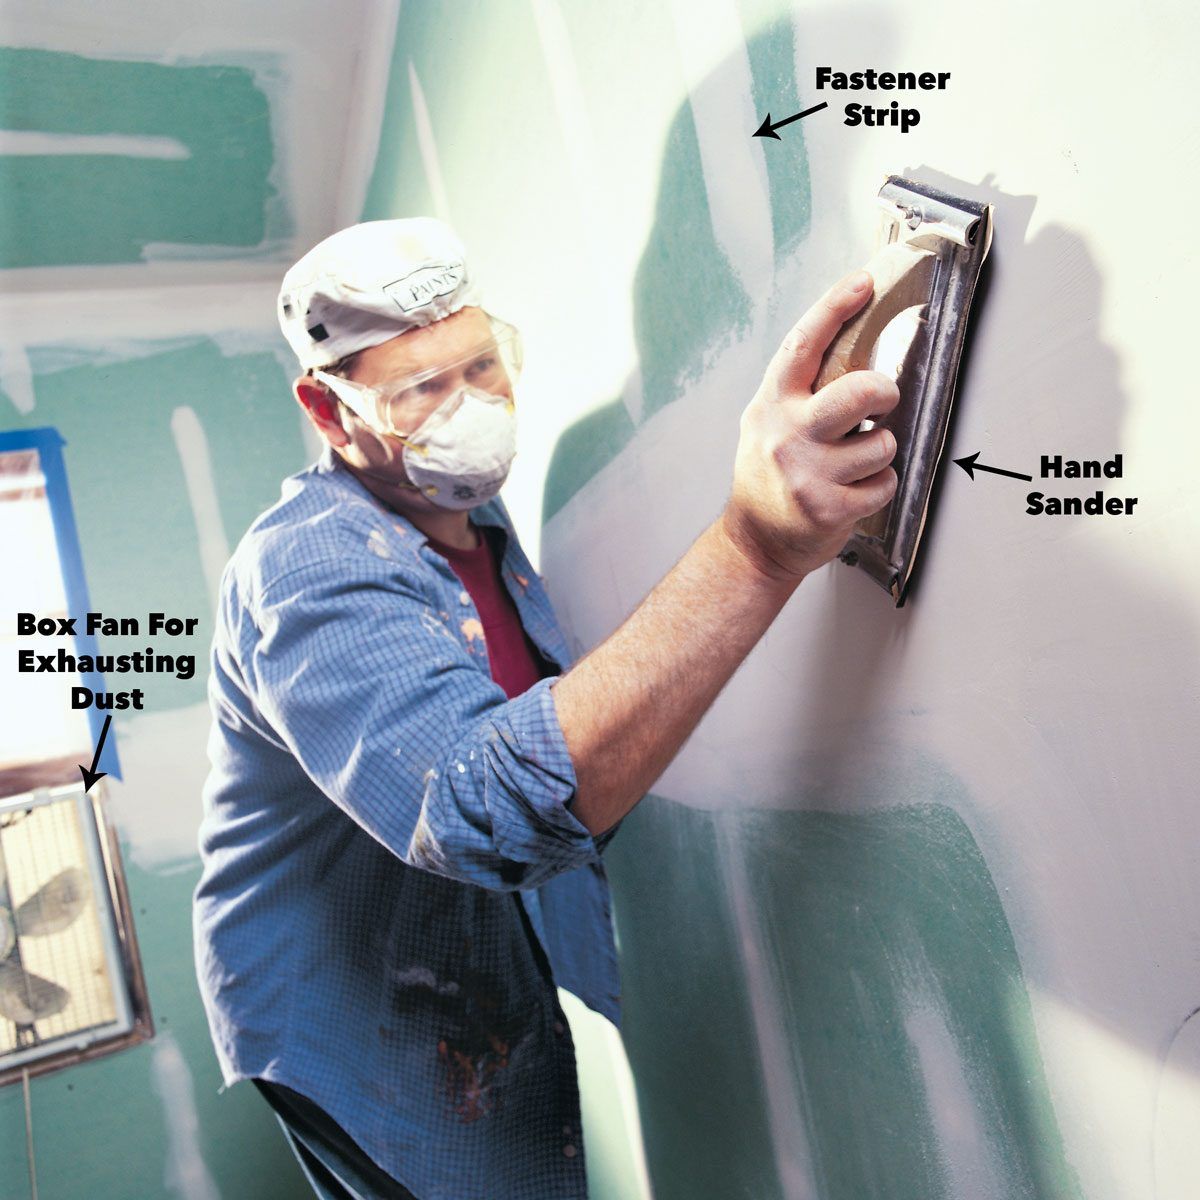 sand drywall with hand sander